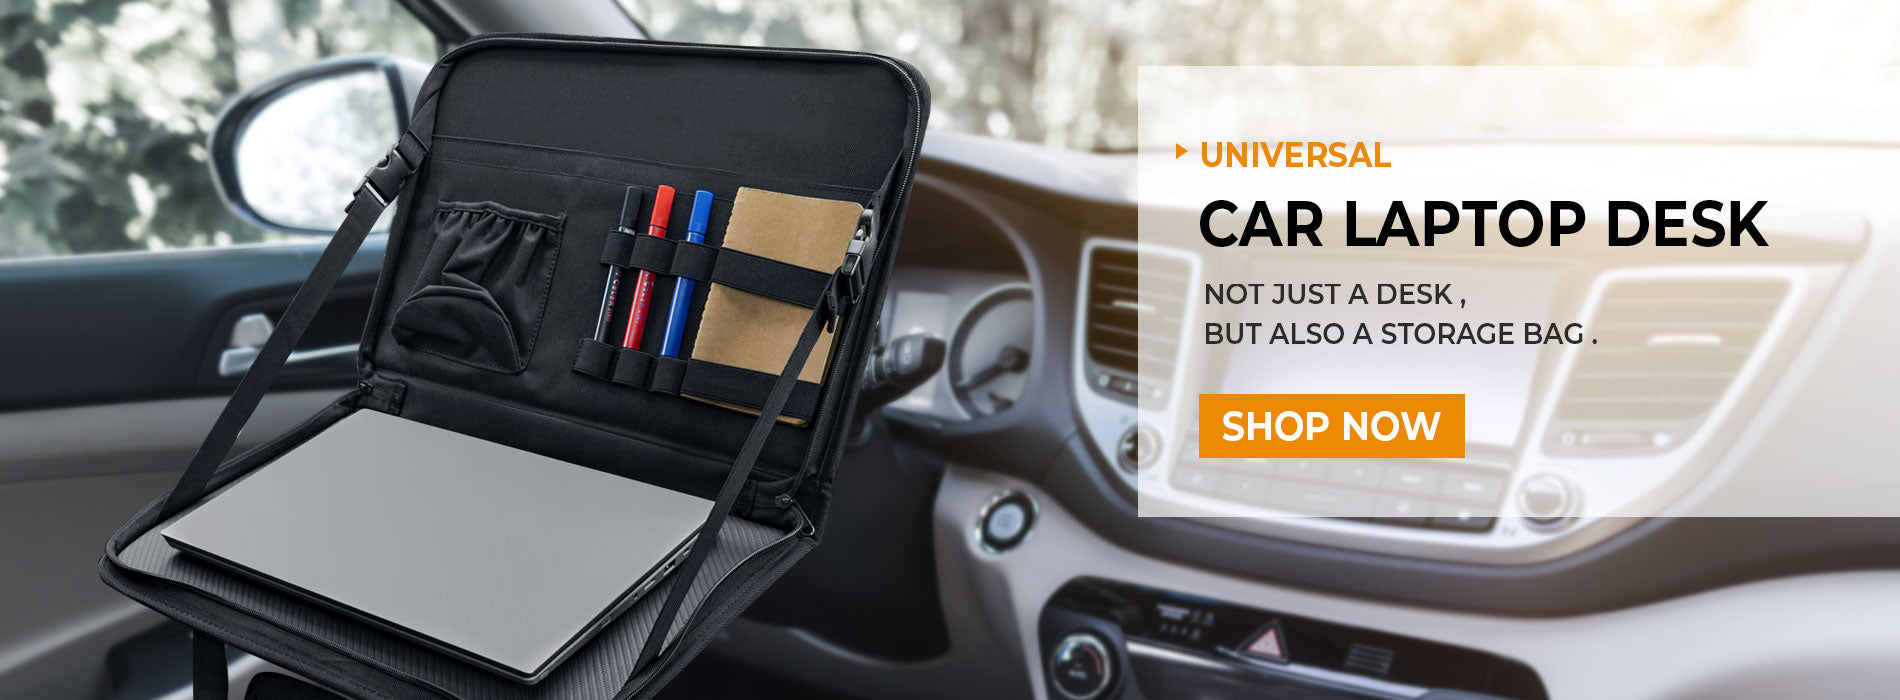 Buy Car Laptop Desk